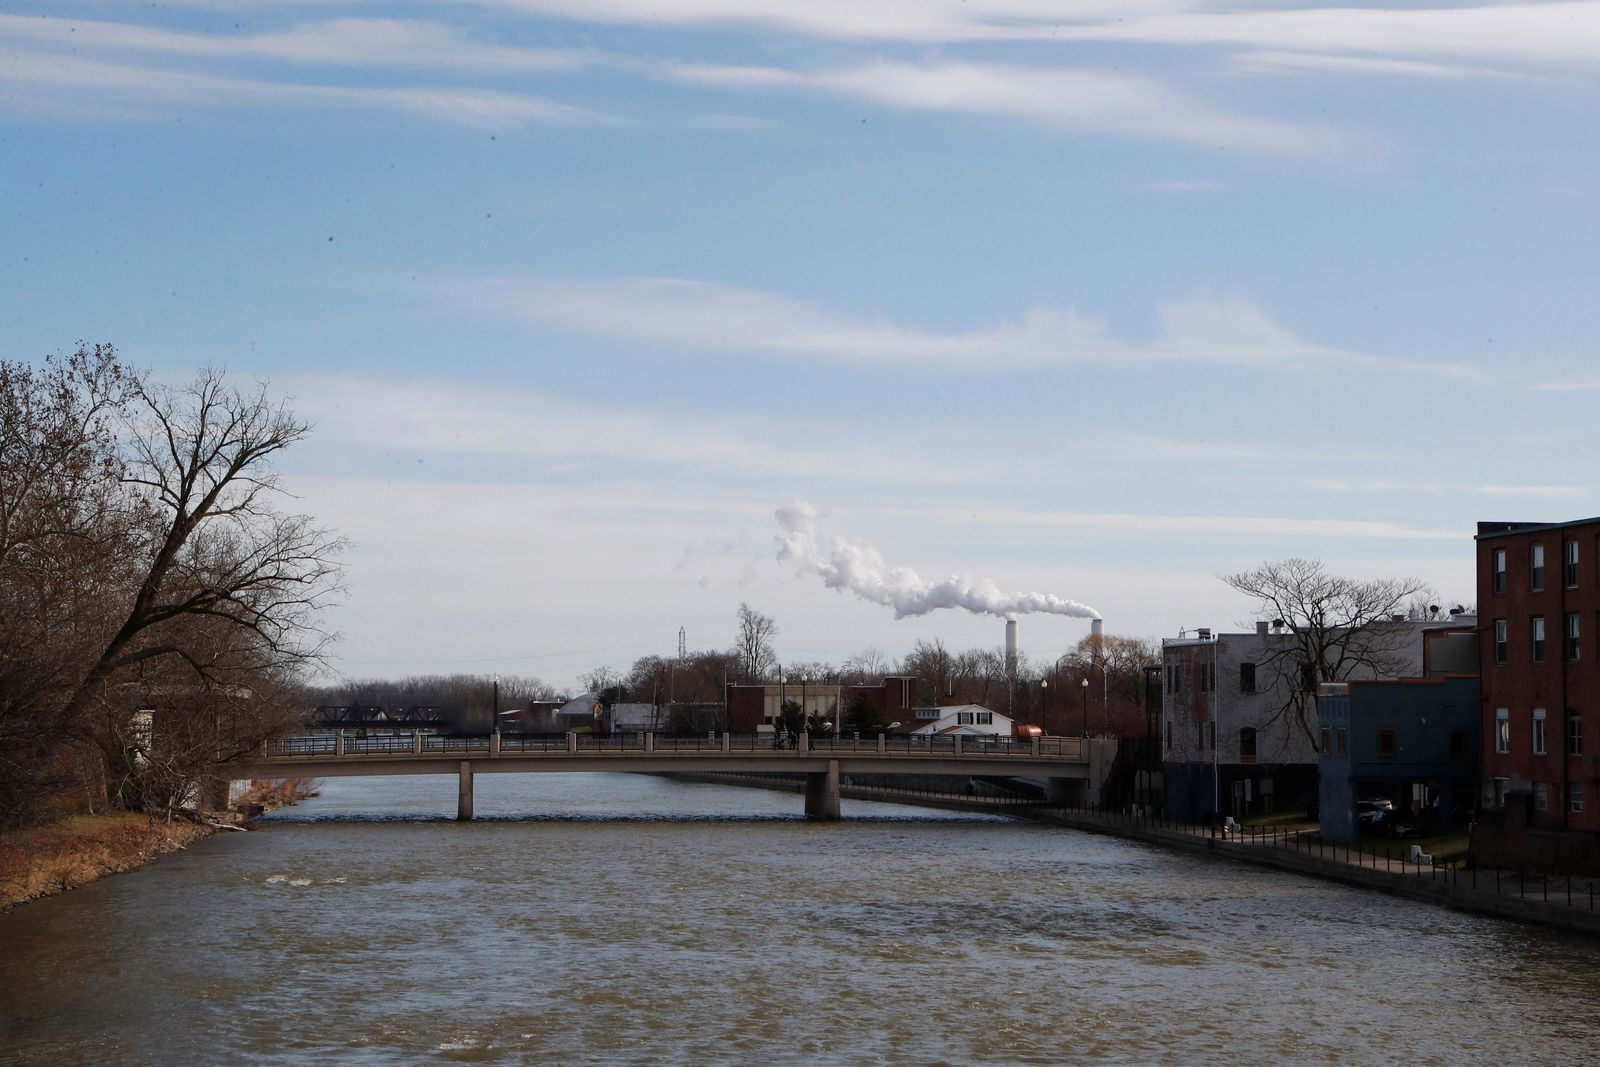 This Tuesday, Jan. 7, 2020 photo shows the River Raisin flowing east through Monroe, Mich. Monroe County, population 150,000, has suffered six military casualties since 2001, putting it above the national per capita averages.  (AP Photo/Carlos Osorio)